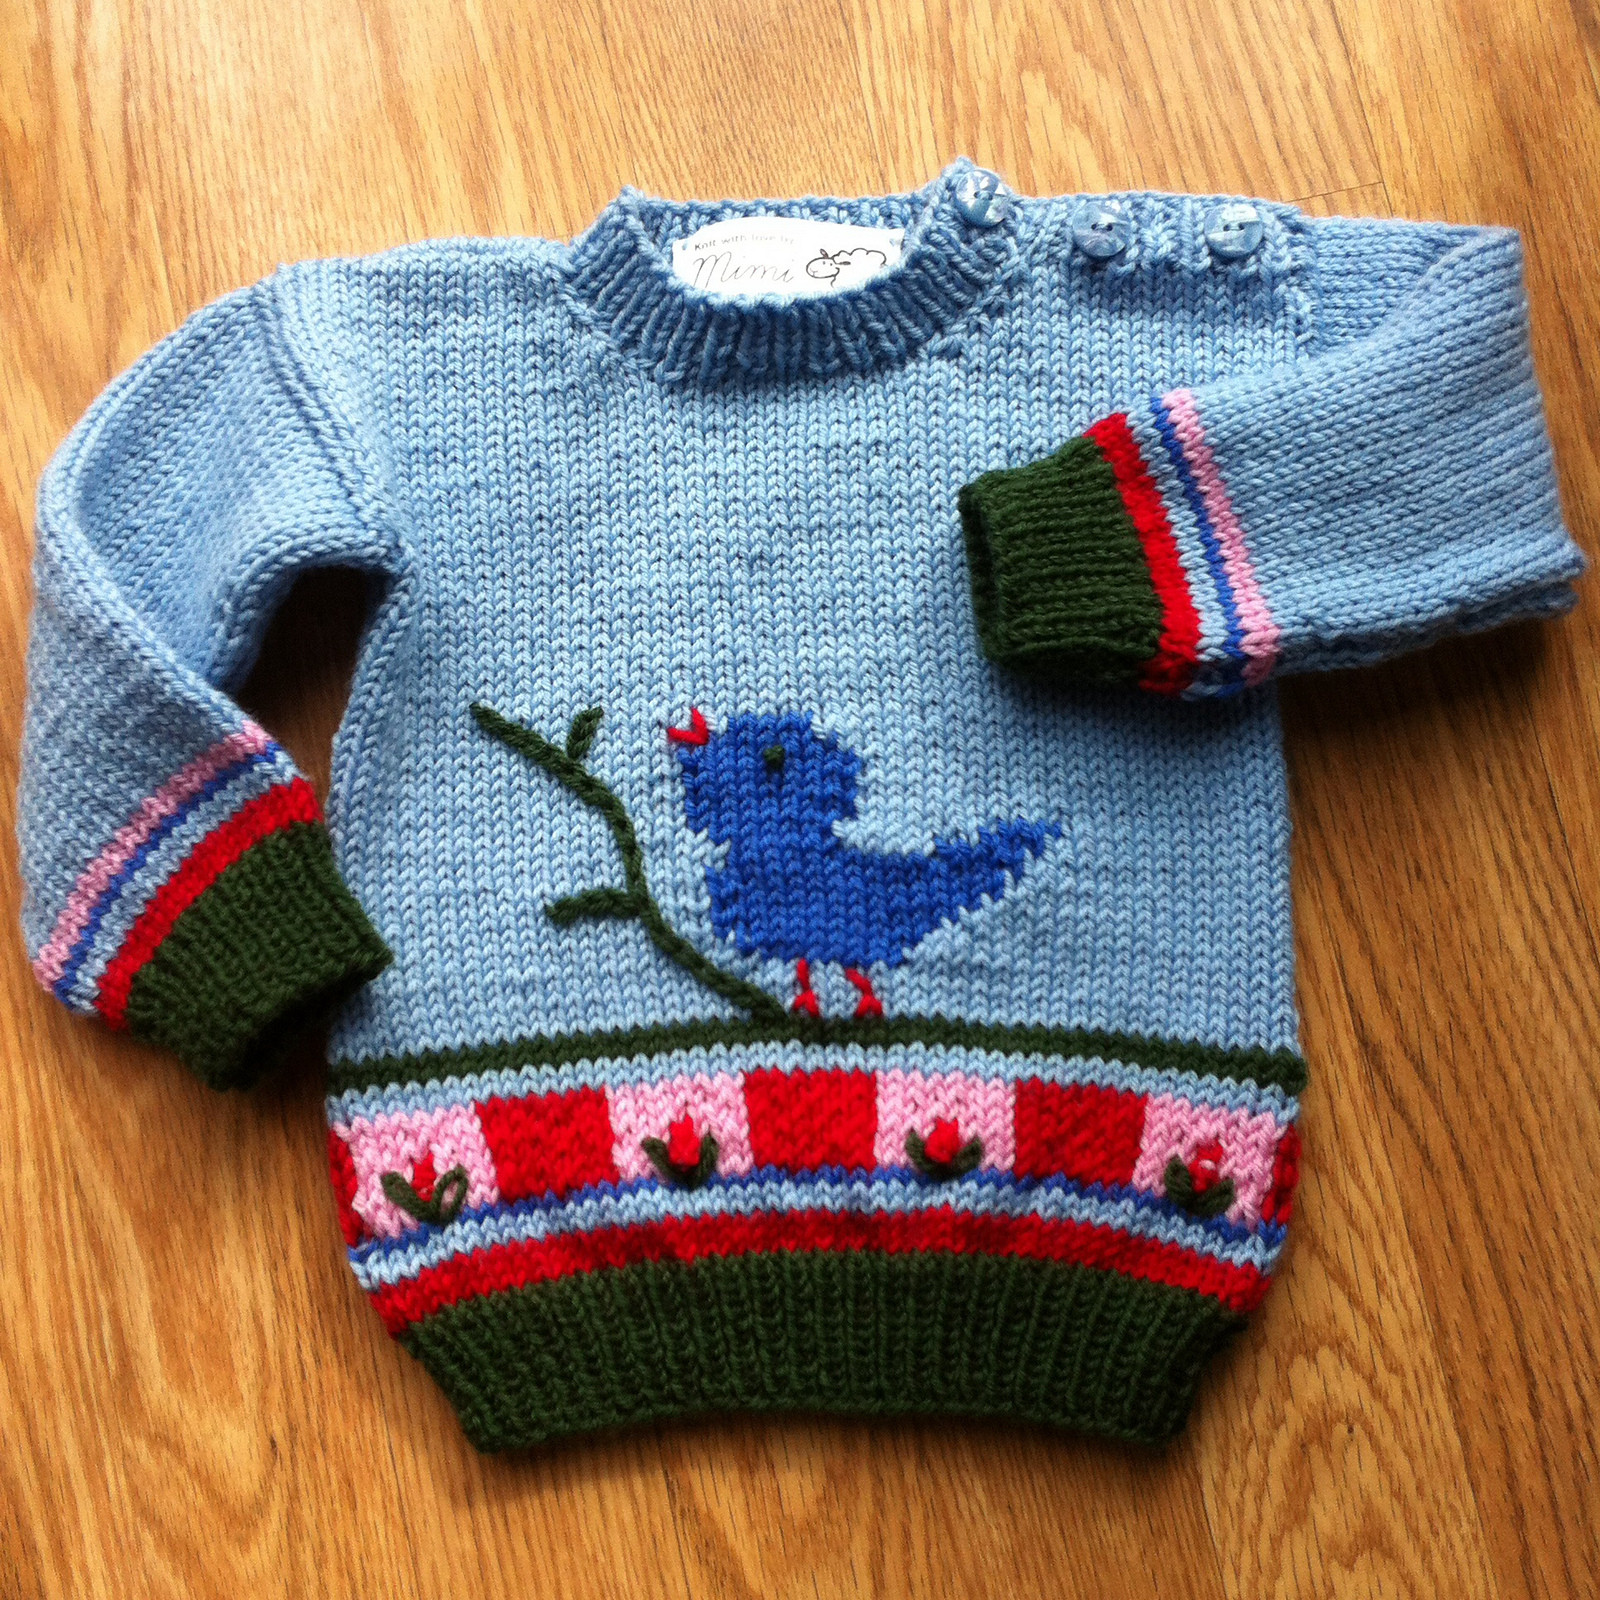 Awesome Easy Baby Pullover Sweater Knitting Pattern Sweater Tunic Easy Knit Baby Sweater Of Fresh 41 Ideas Easy Knit Baby Sweater